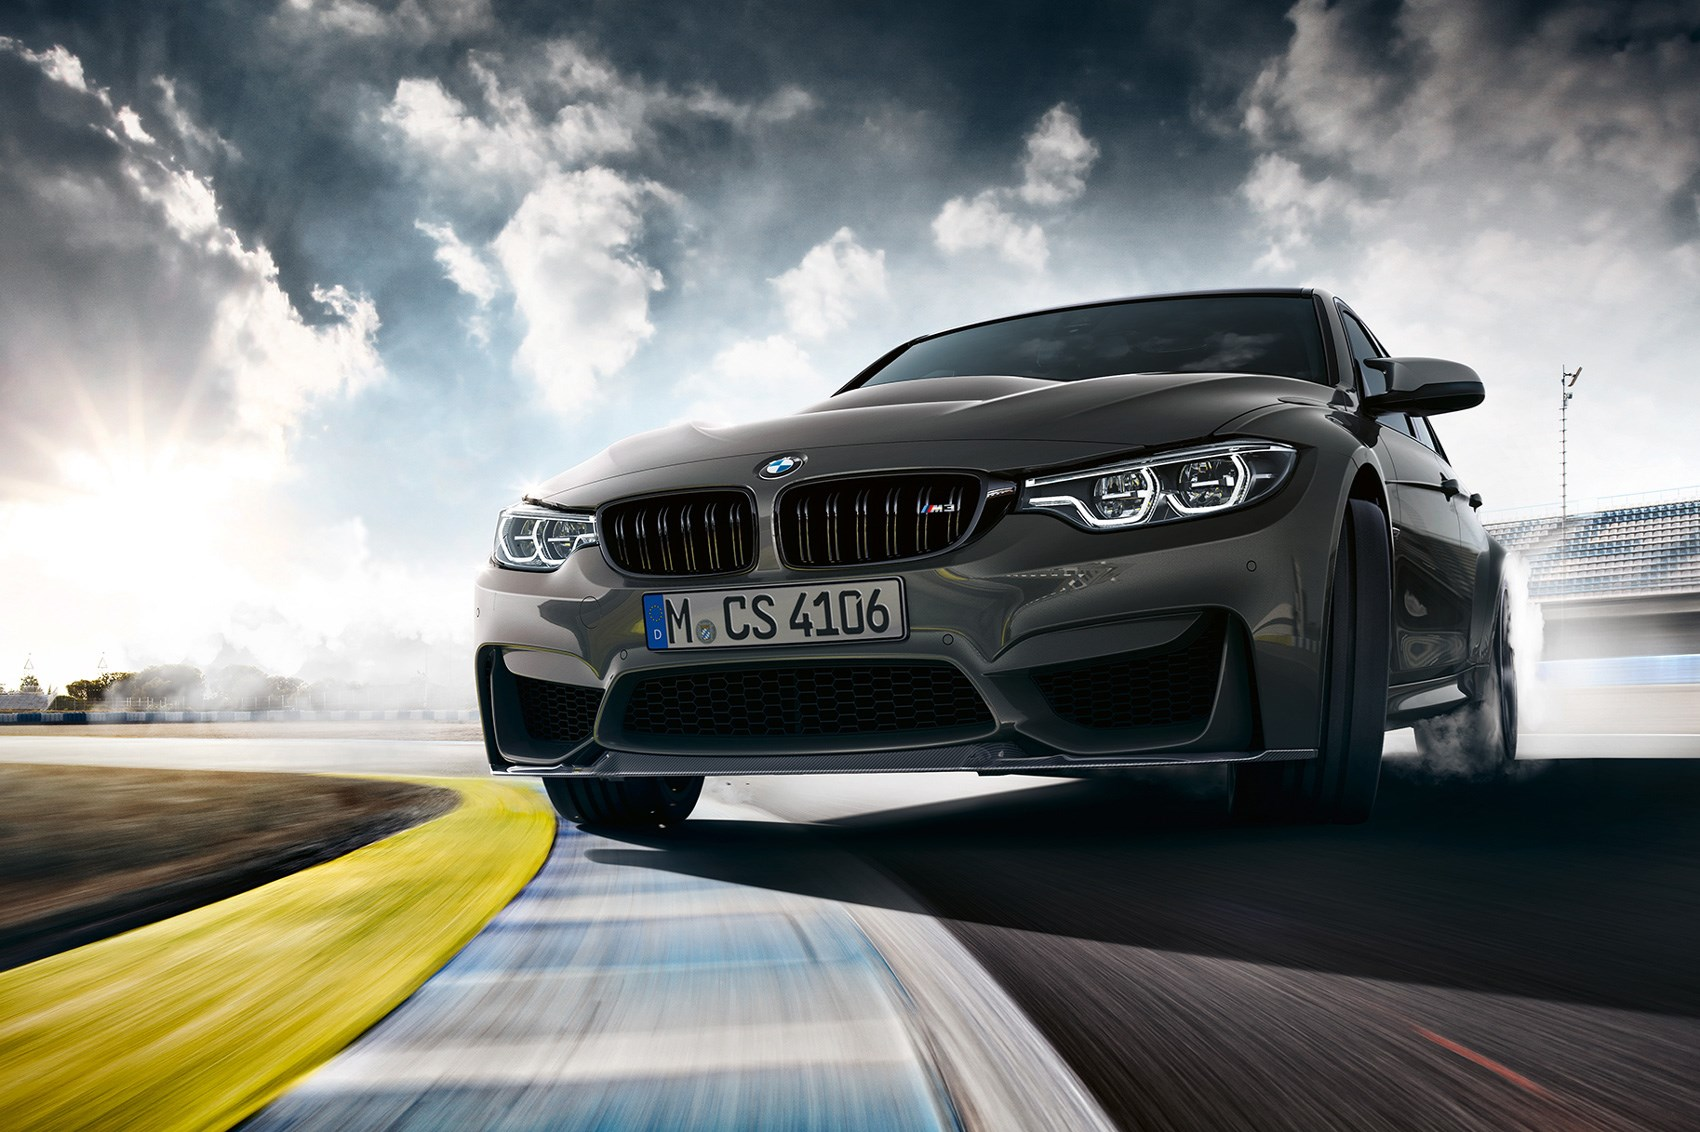 BMW M3 CS special edition confirmed